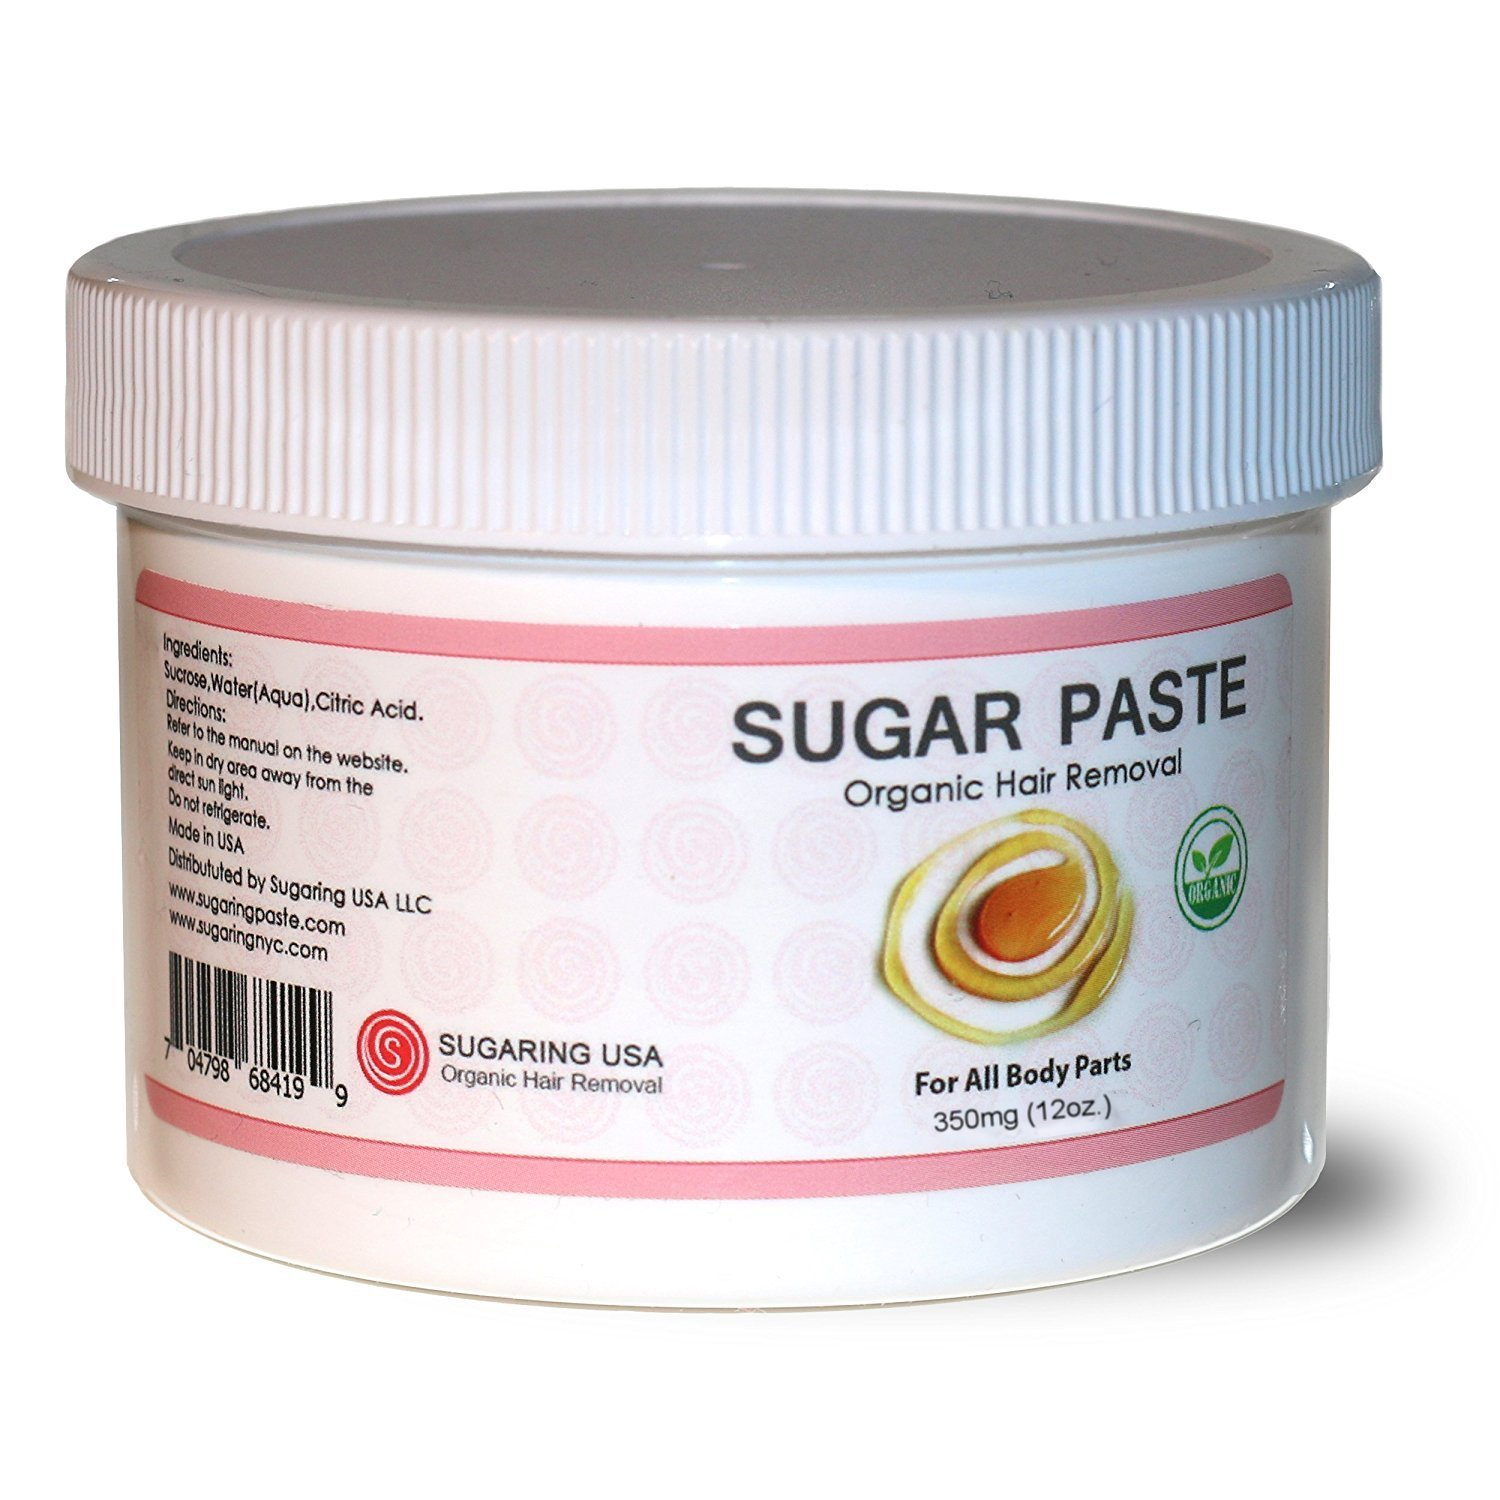 Sugaring Paste for Bikini, Legs, Brazilian, Arms and Back - 12oz by Sugaring NYC